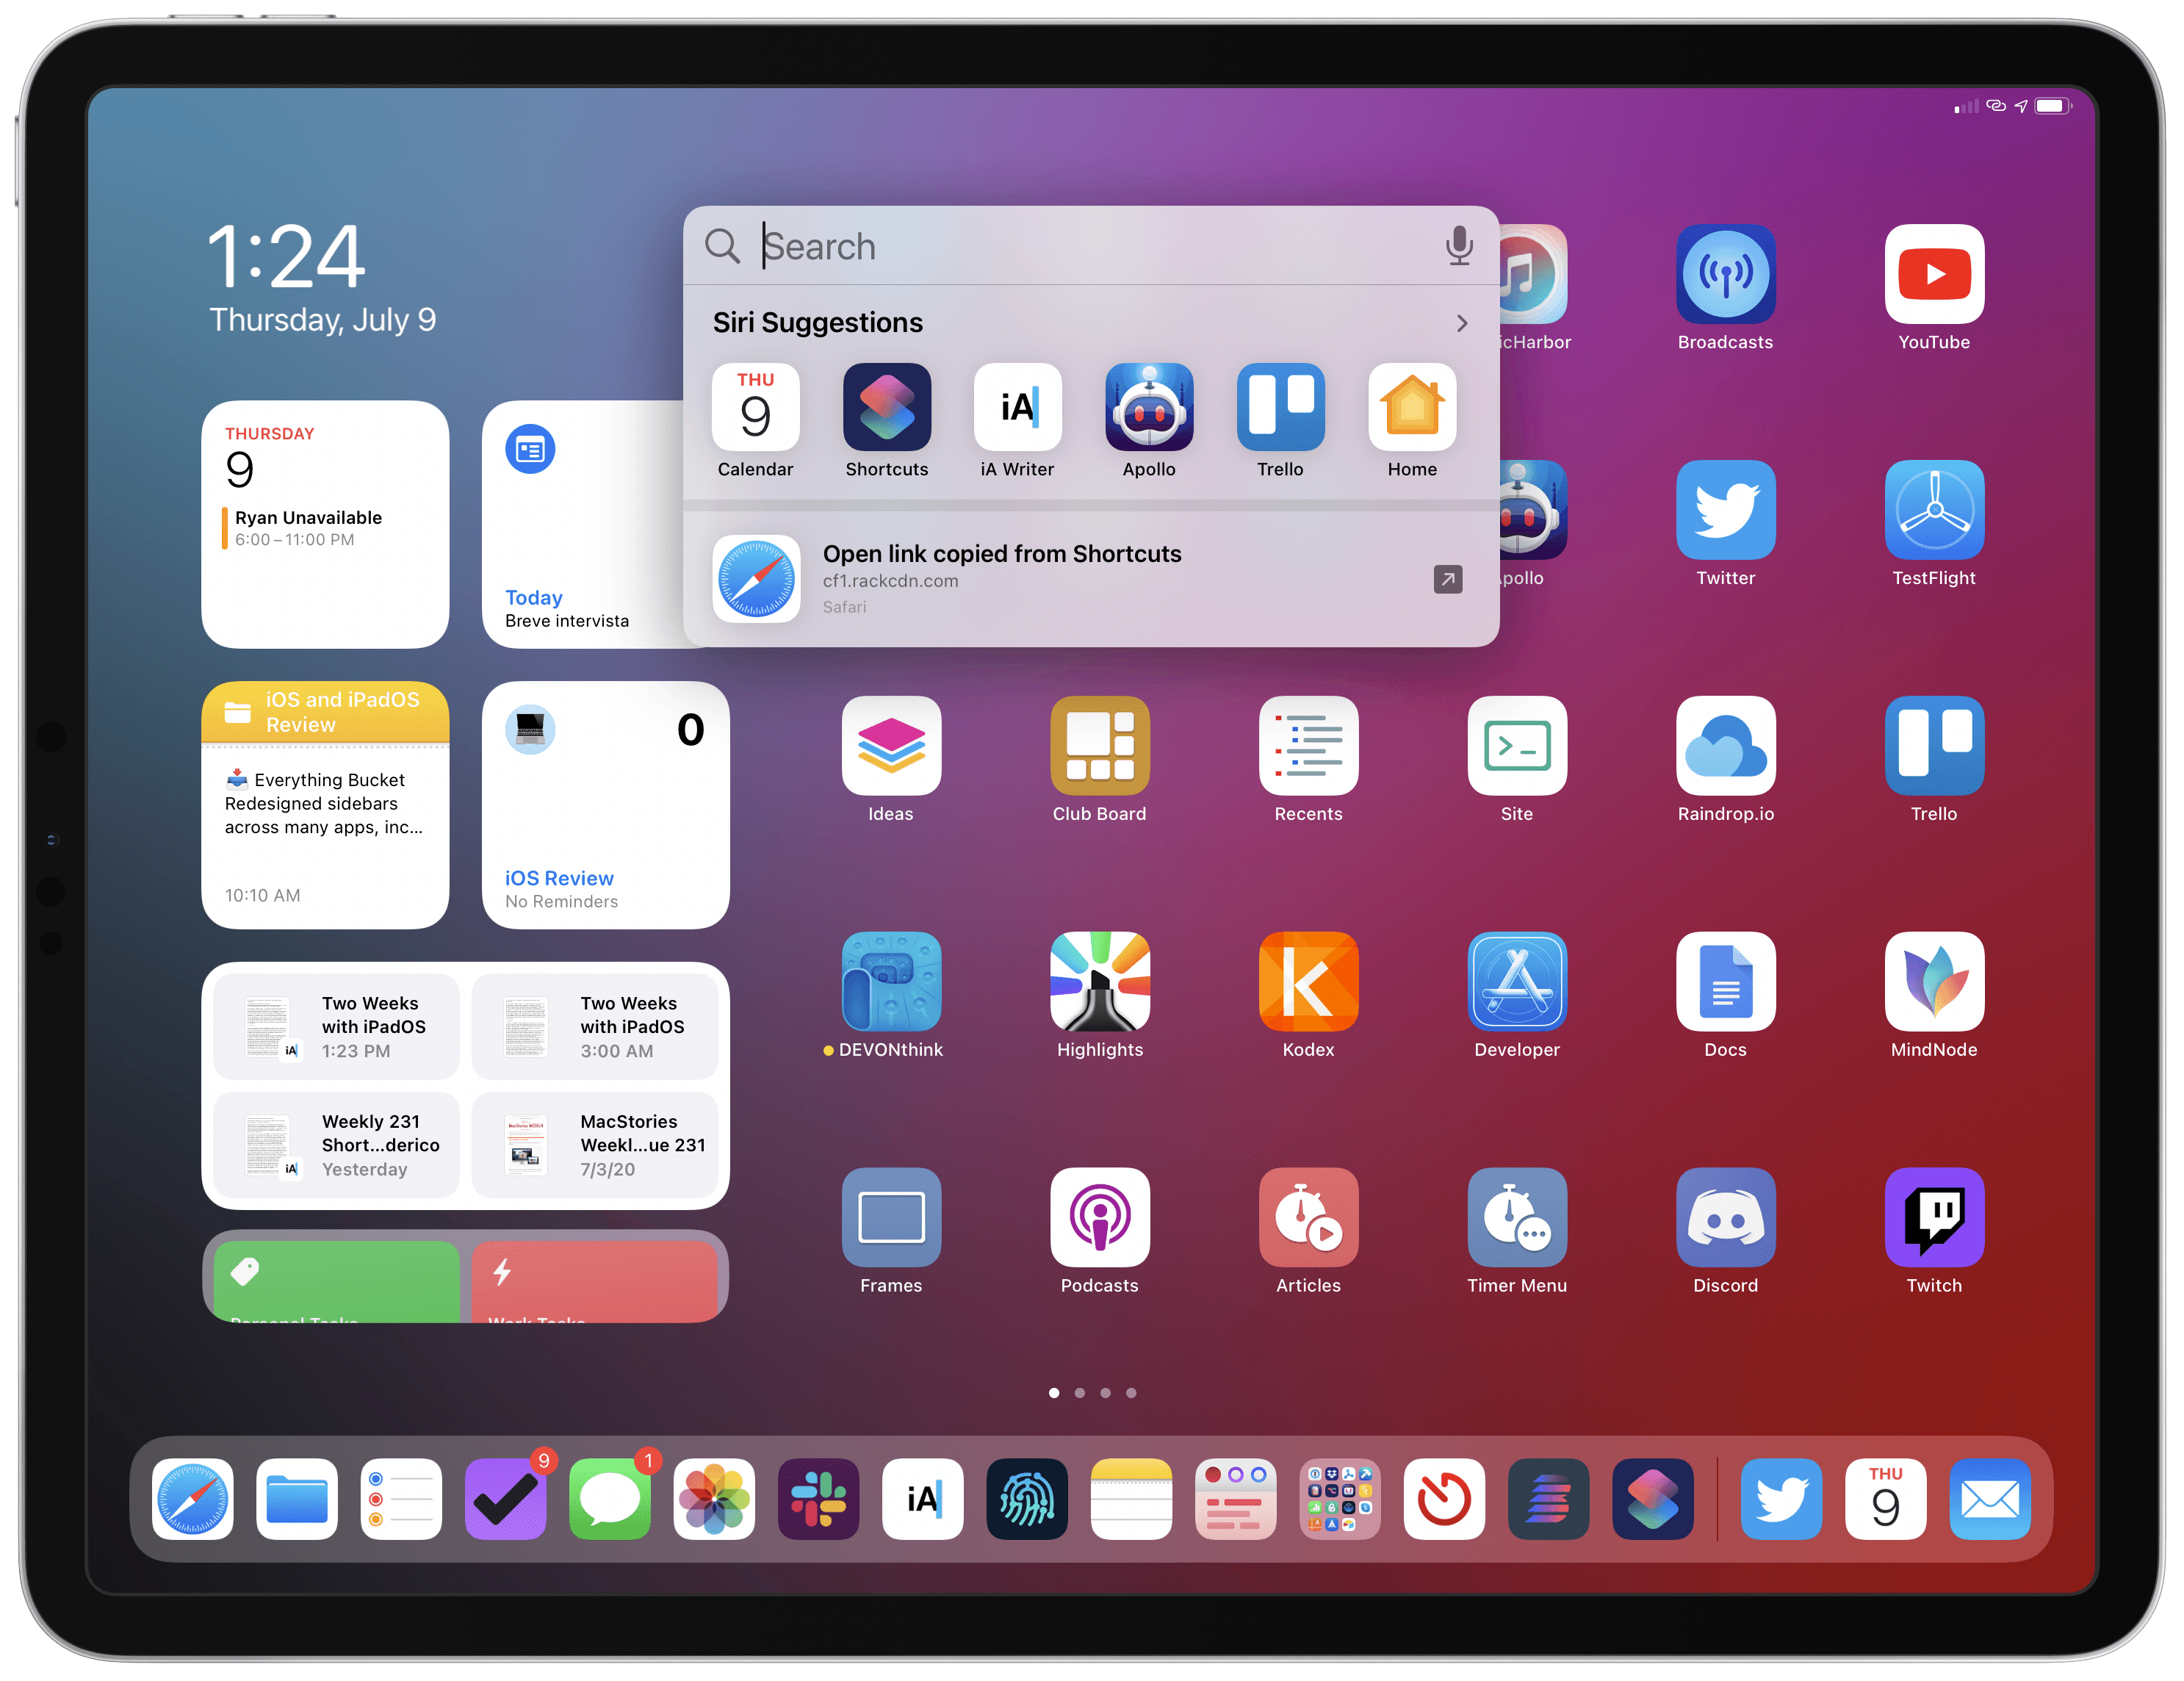 The new Search feature in iPadOS 14. Unfortunately, it's still impossible to activate Search inside apps if you're not using an external keyboard.